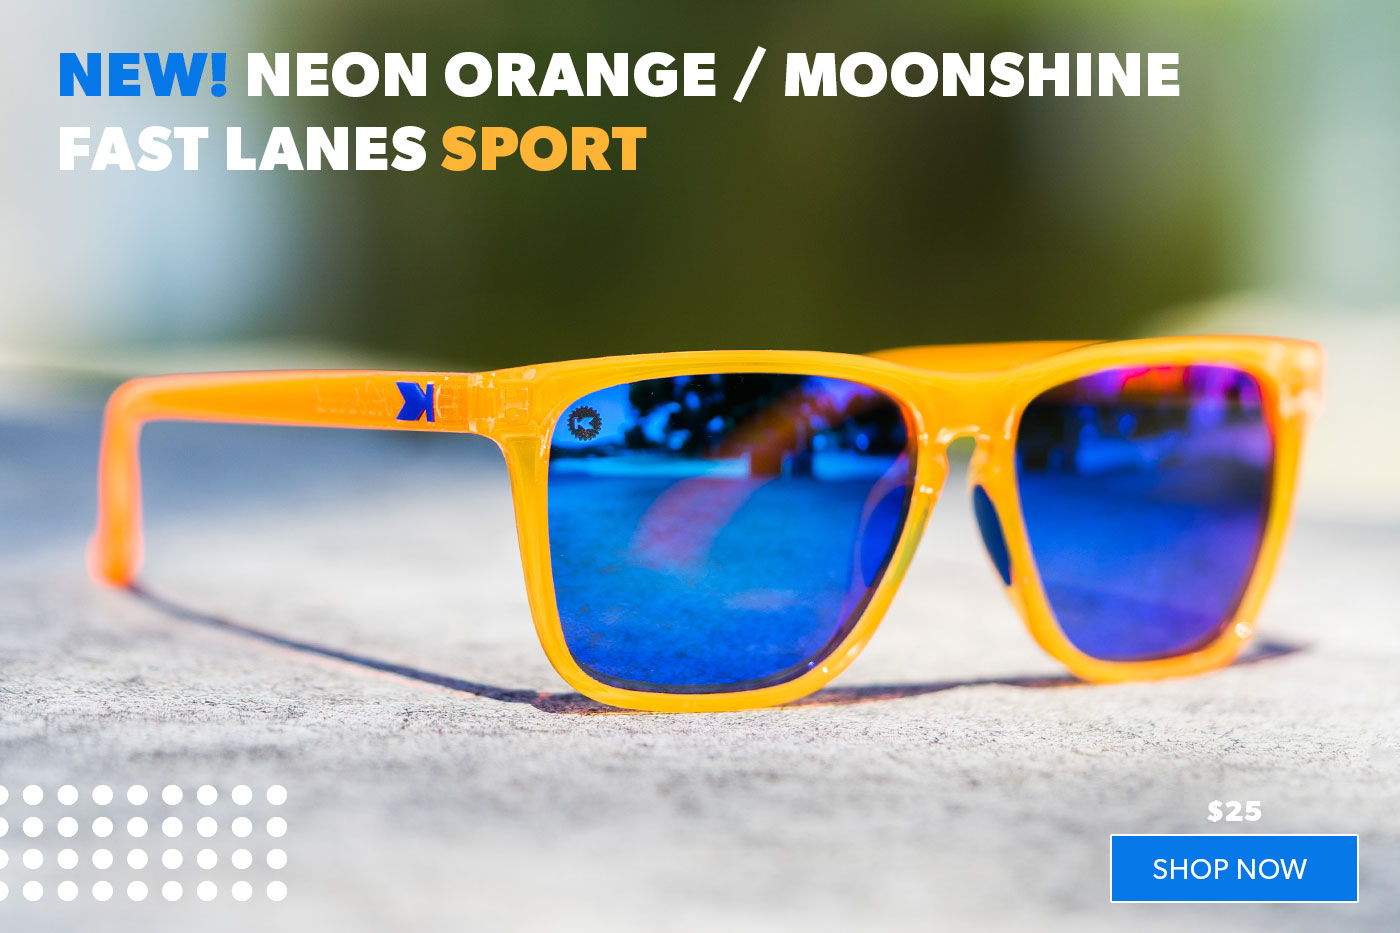 New! Neon Orange / Moonshine Fast Lanes Sport